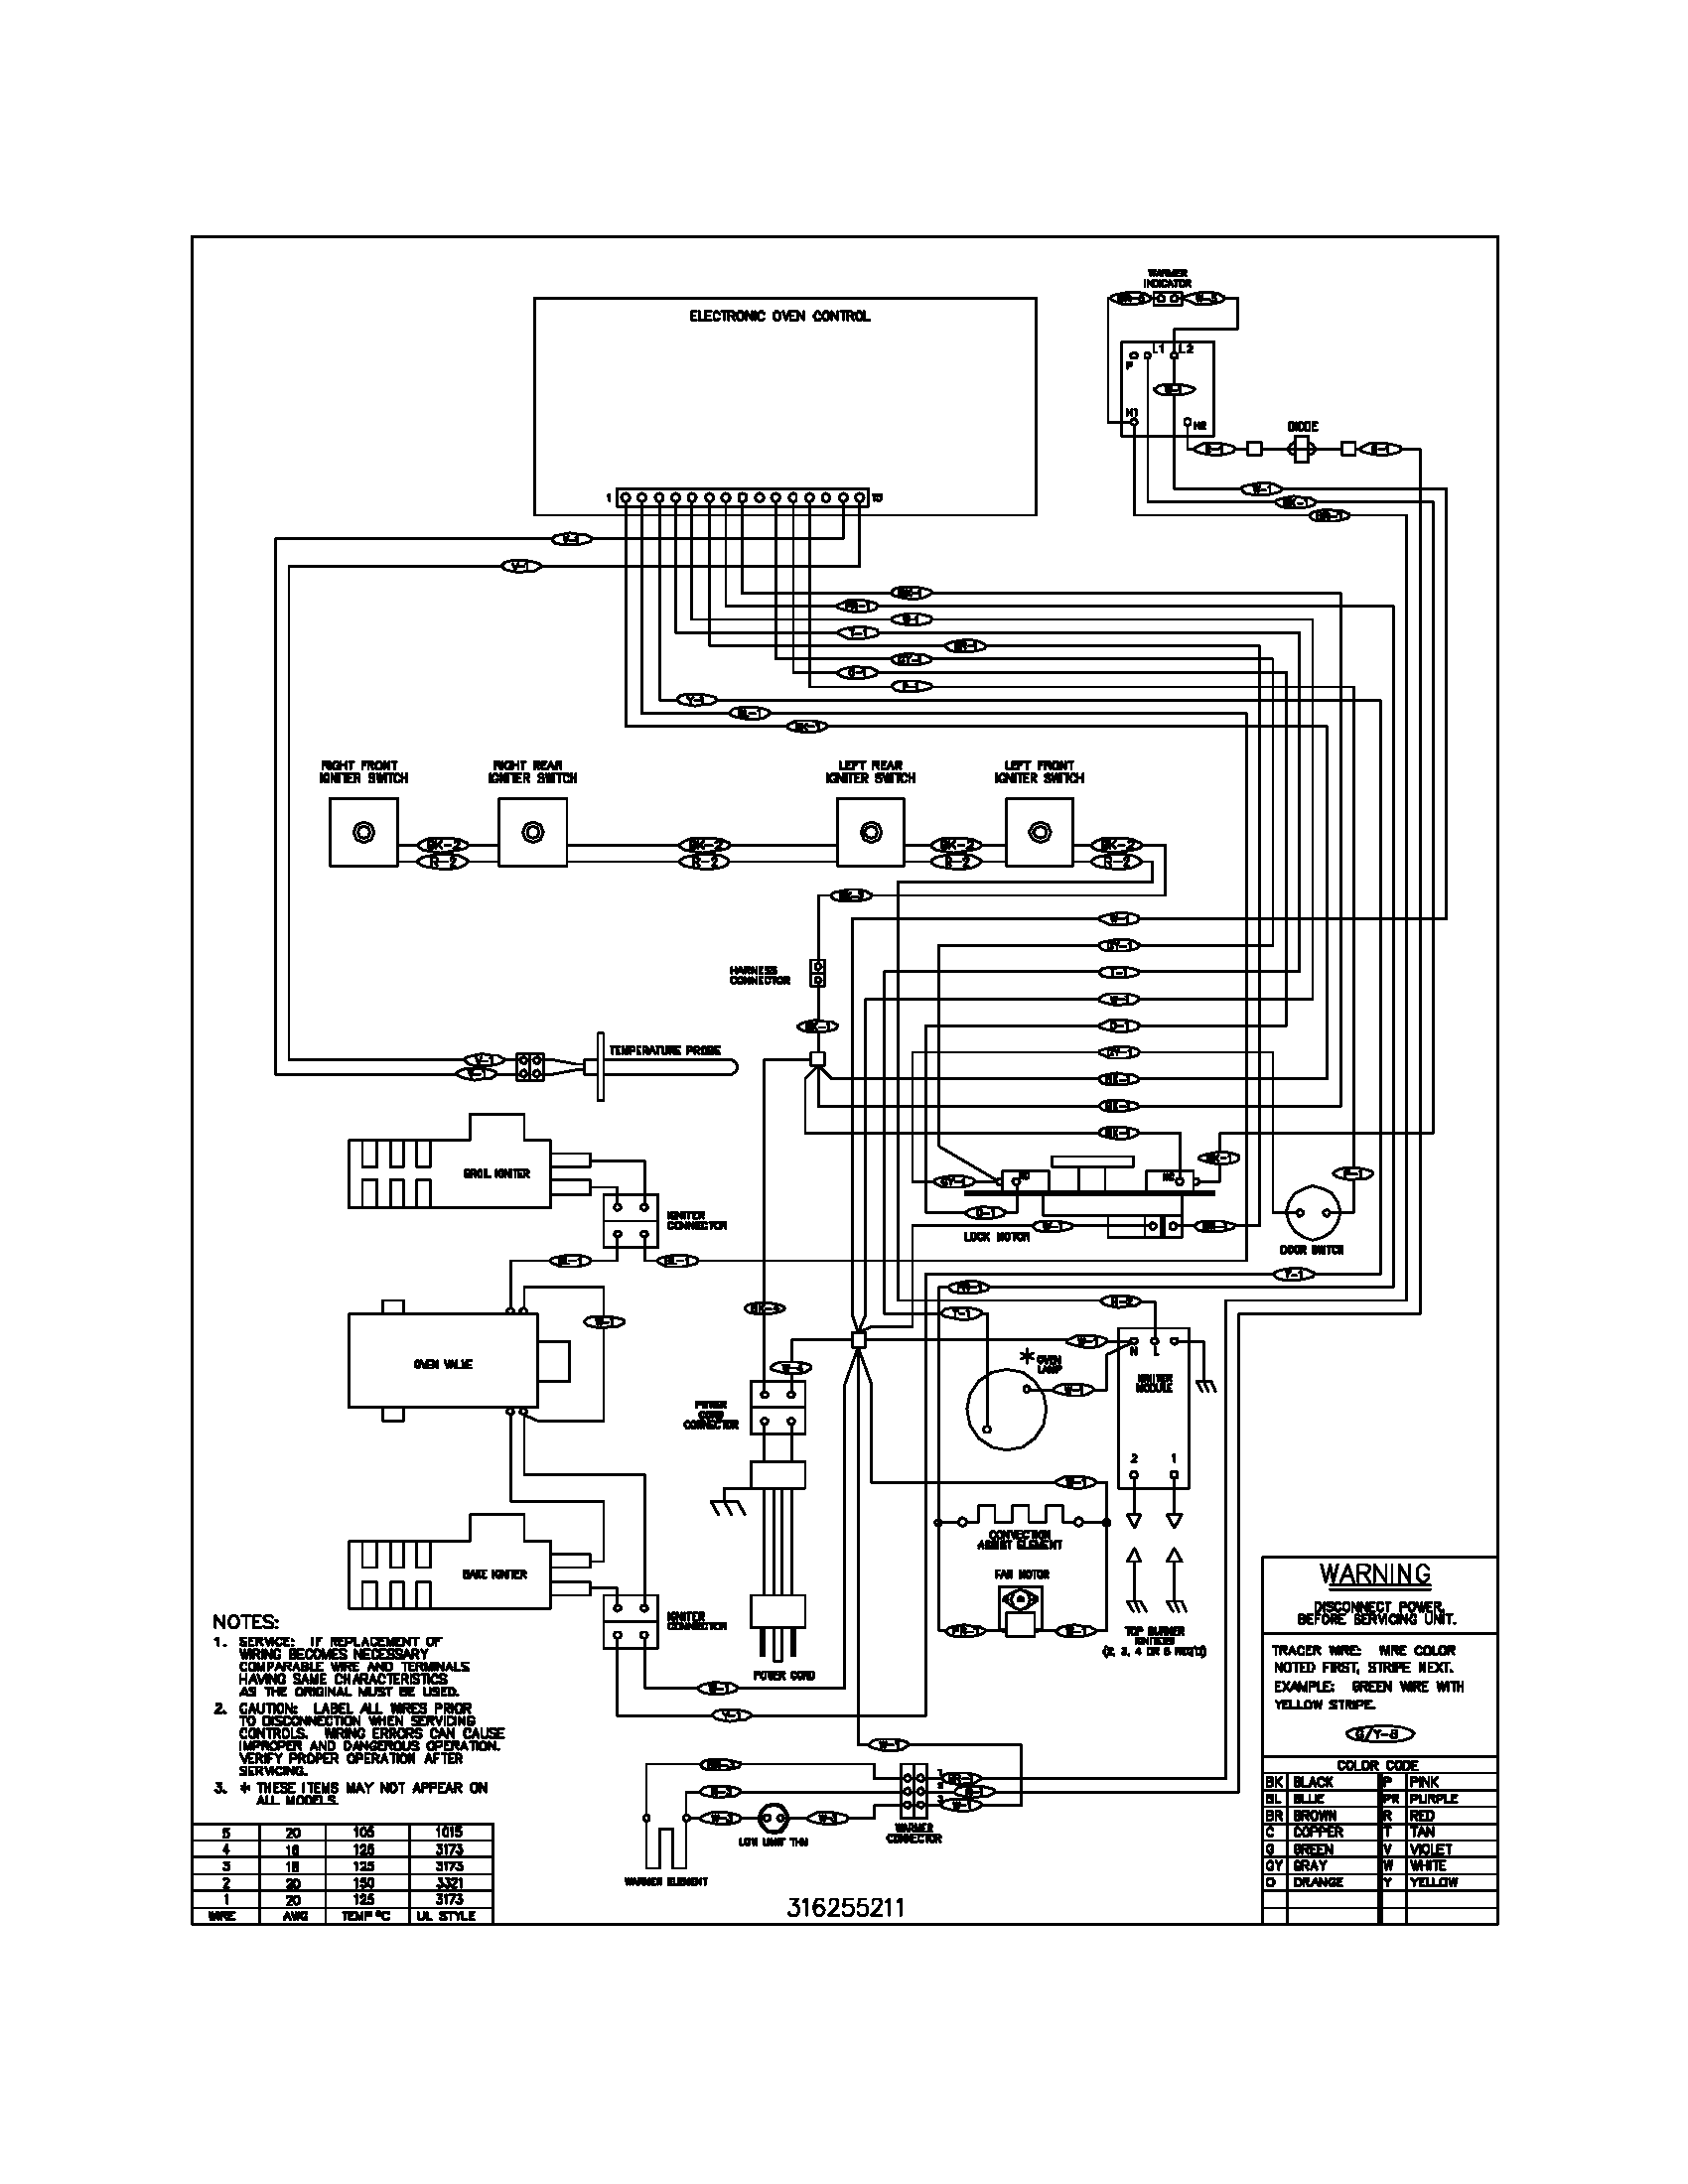 wiring diagram parts whirlpool gas range wiring schematics wiring diagram simonand ge profile microwave wiring diagram at edmiracle.co